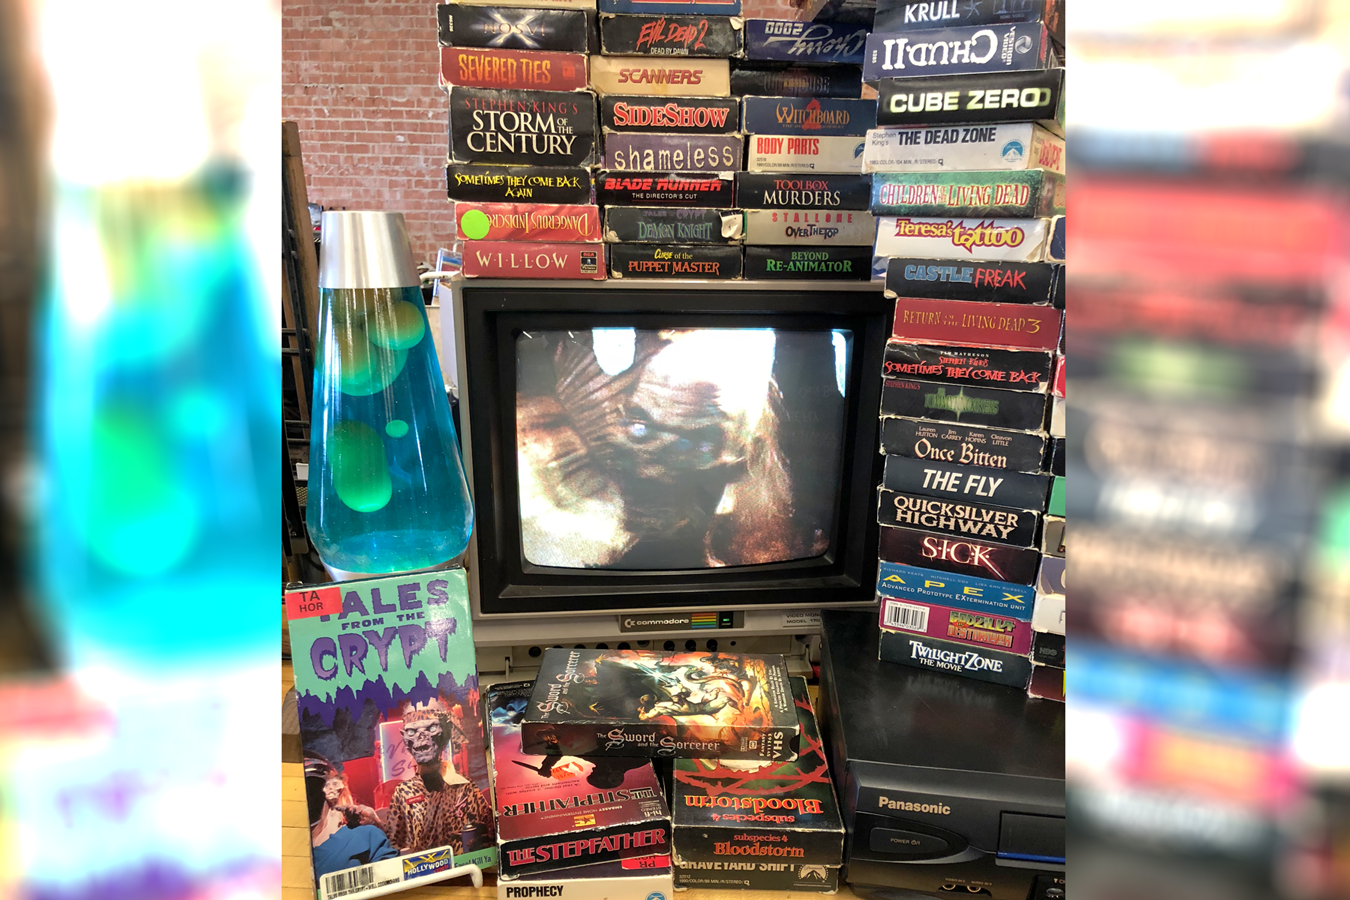 Stack of VHS tapes and a lava lamp surrounding a television set with Tales from the Crypt playing on it